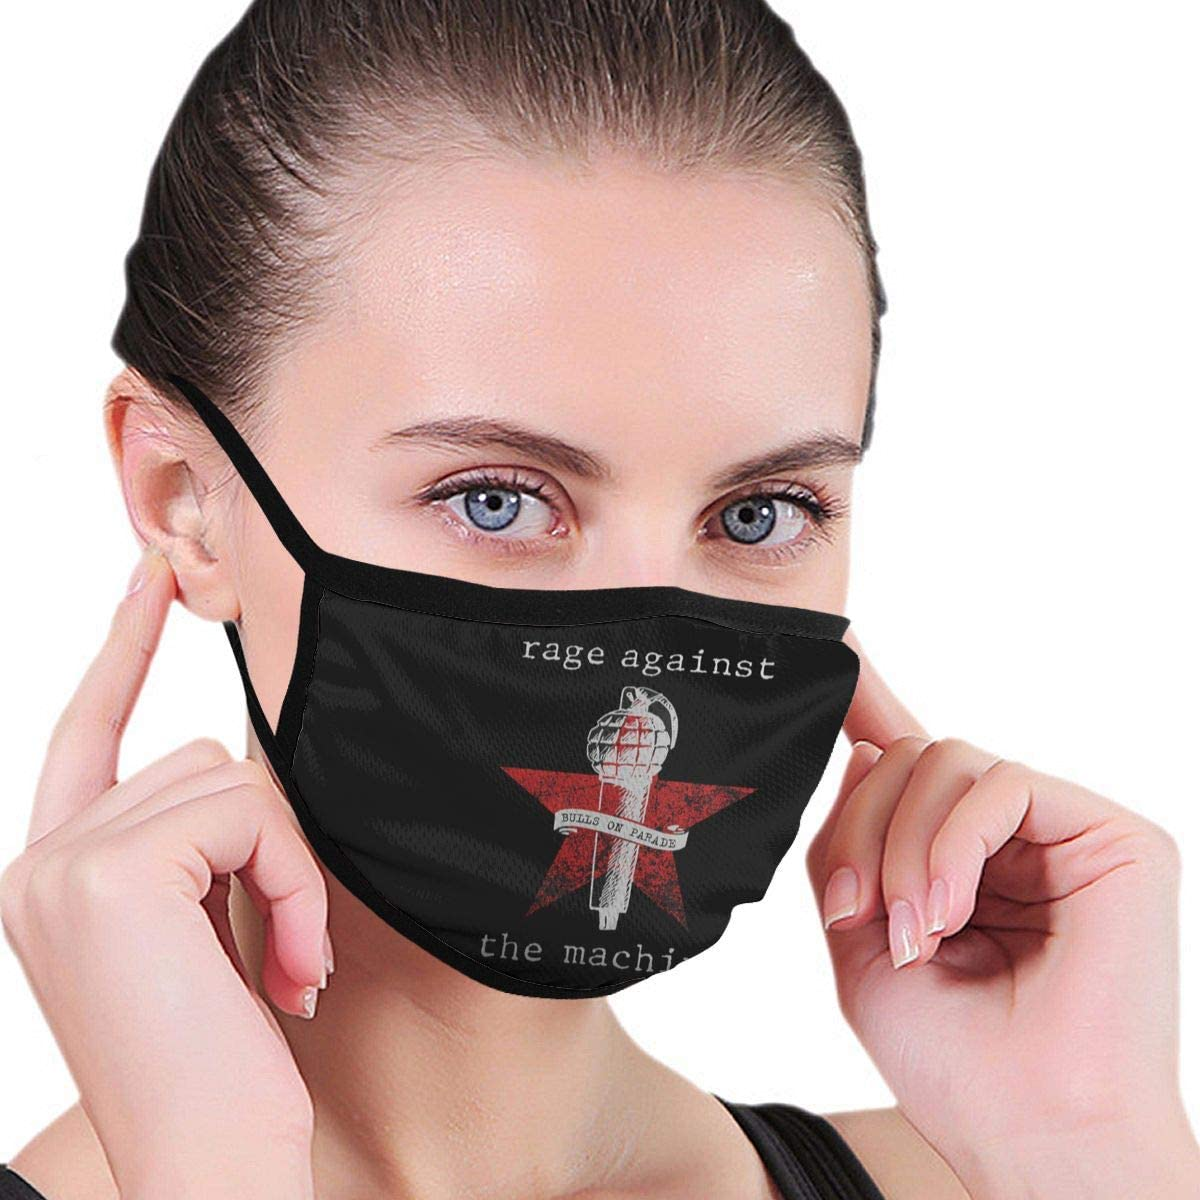 Hkany Fashionable Protection, Rage Against The Machine Neutral Black Dustproof Cotton, Windproof and Dustproof. Anti-Pollution.